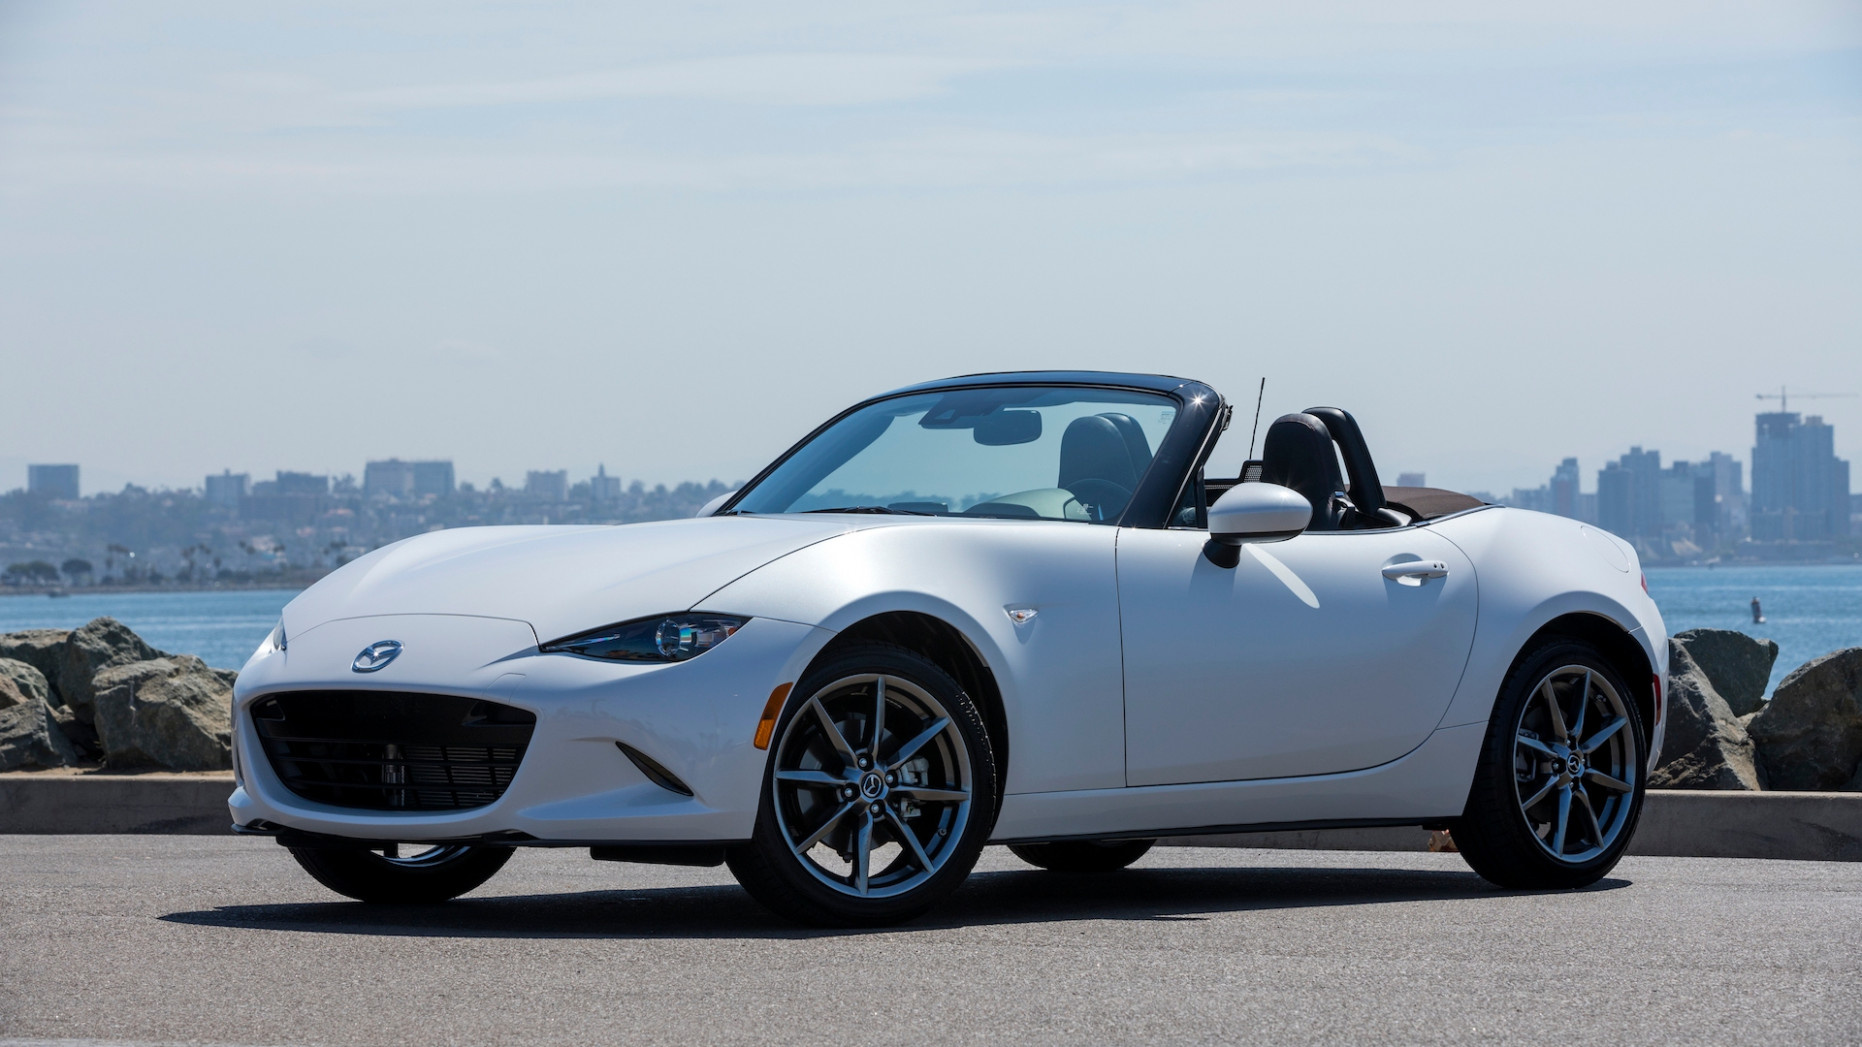 Overview 2022 Mazda MX-5 Miata